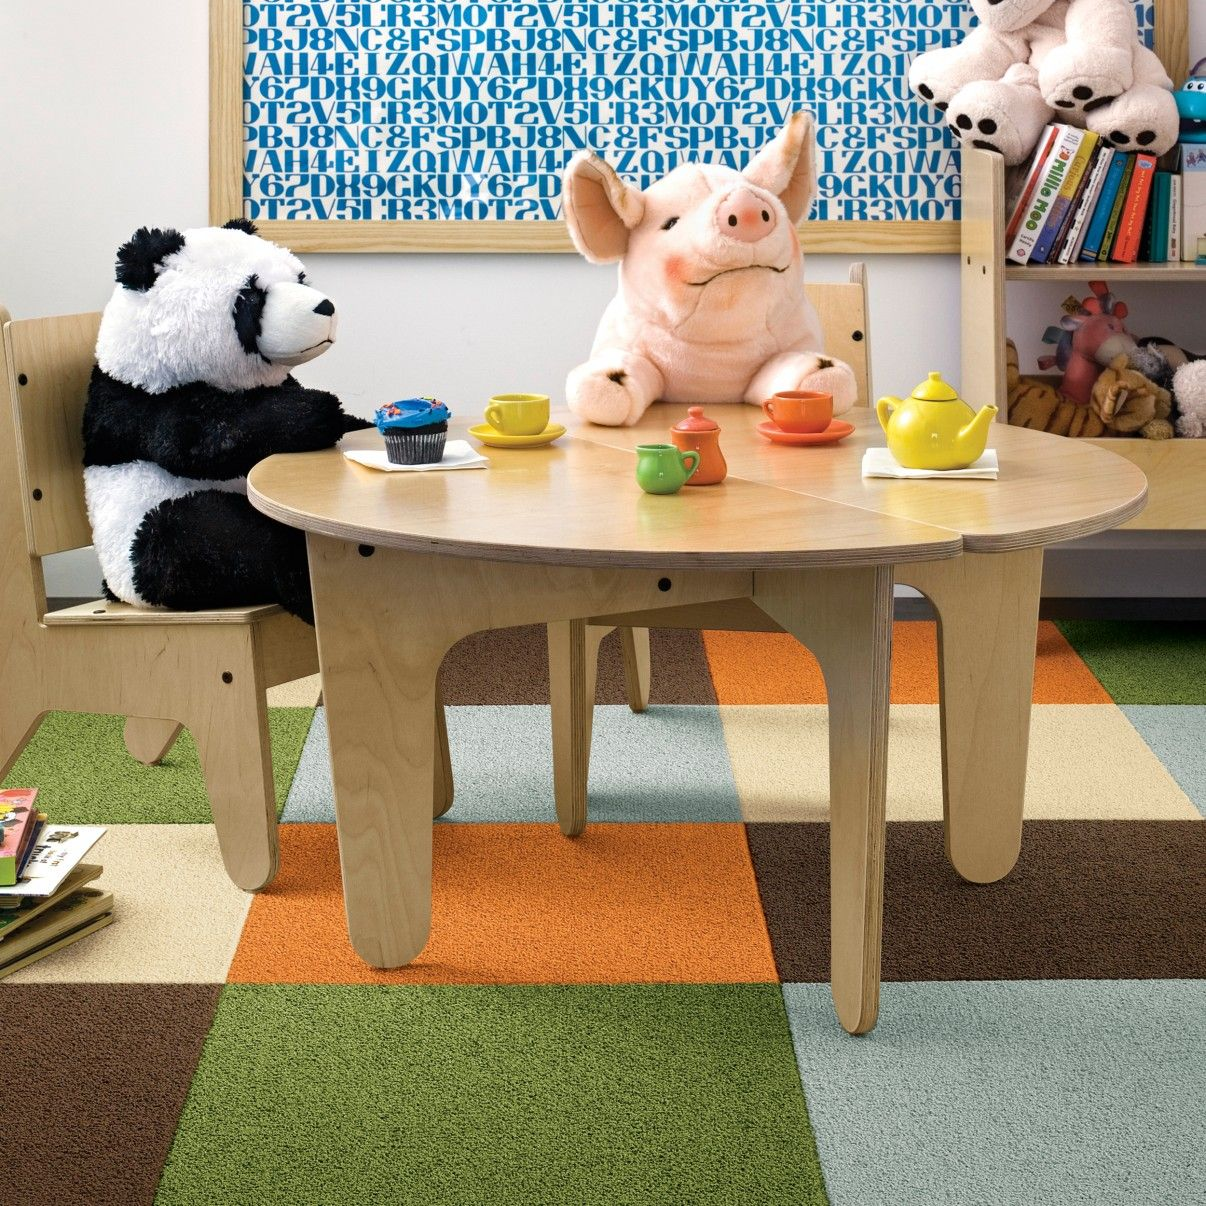 Thinking Of Replacing Rug In The Playroom With Flor Tiles Like These